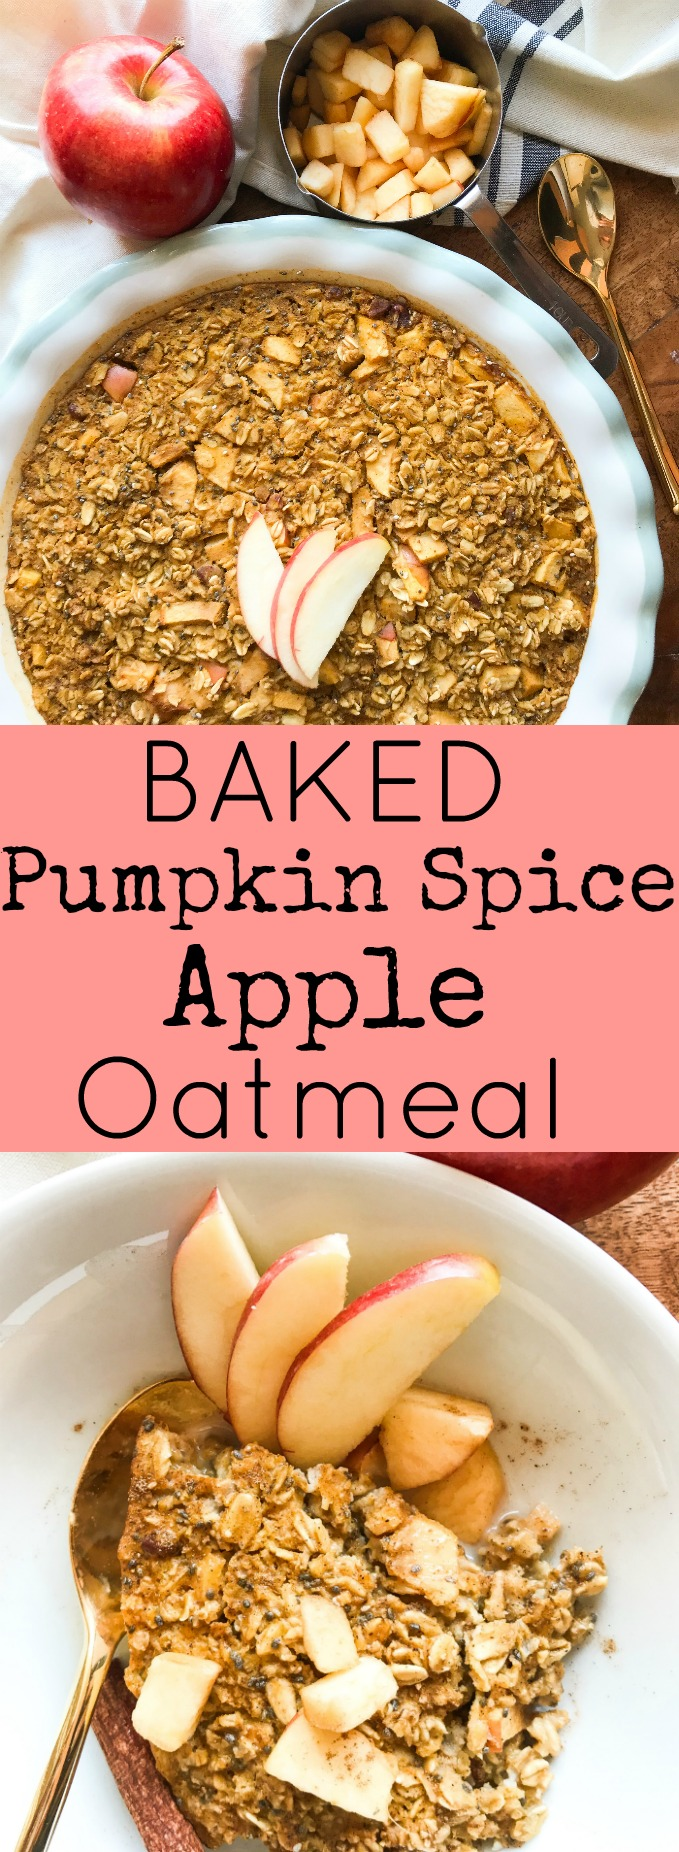 Baked Pumpkin Spice Apple Oatmeal